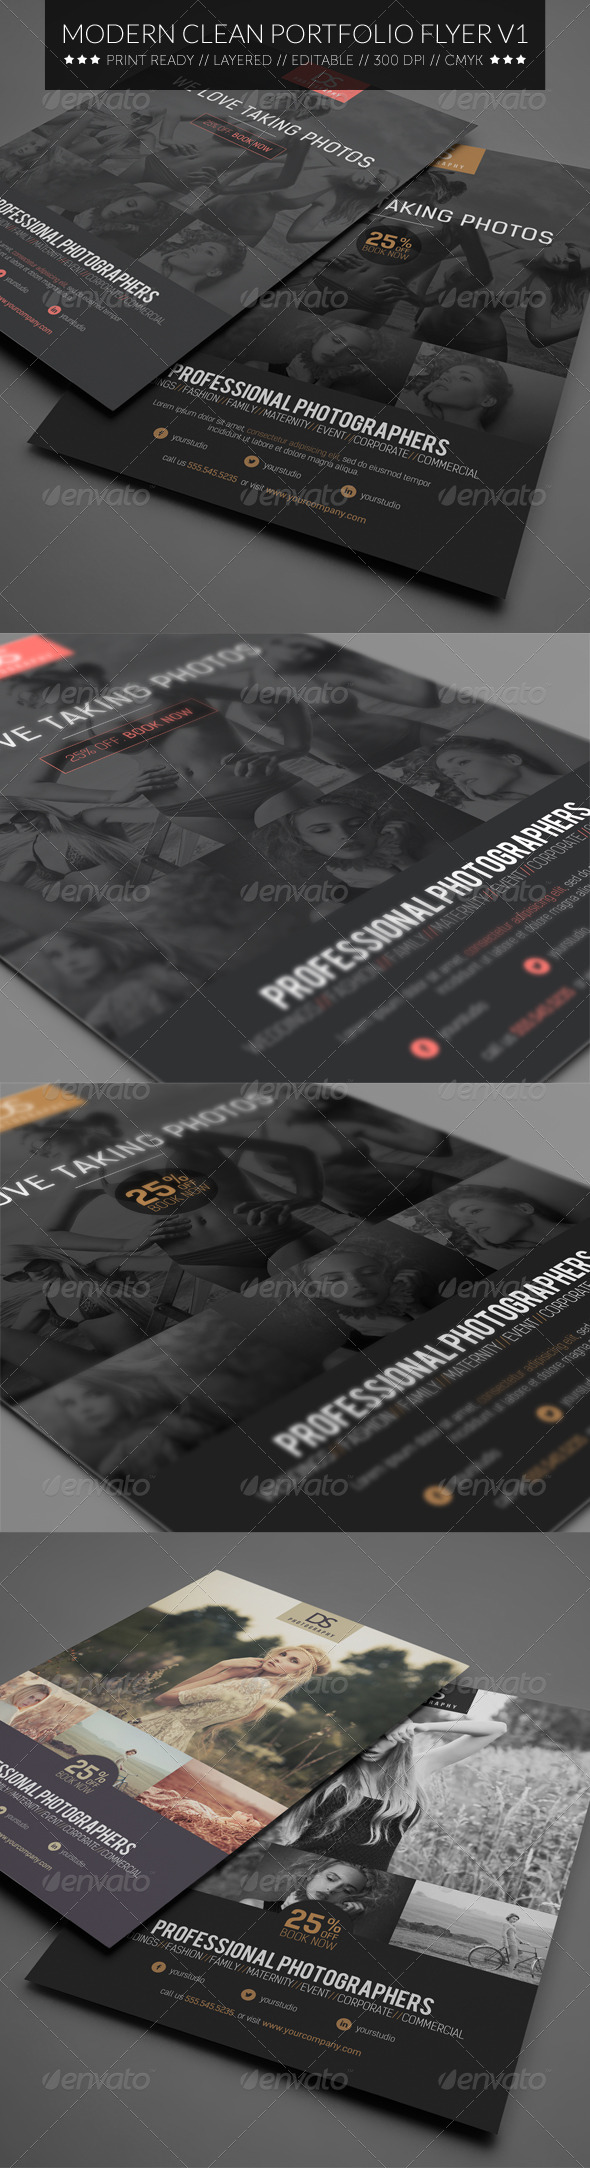 Modern Clean Photography Flyer V1 - Corporate Flyers